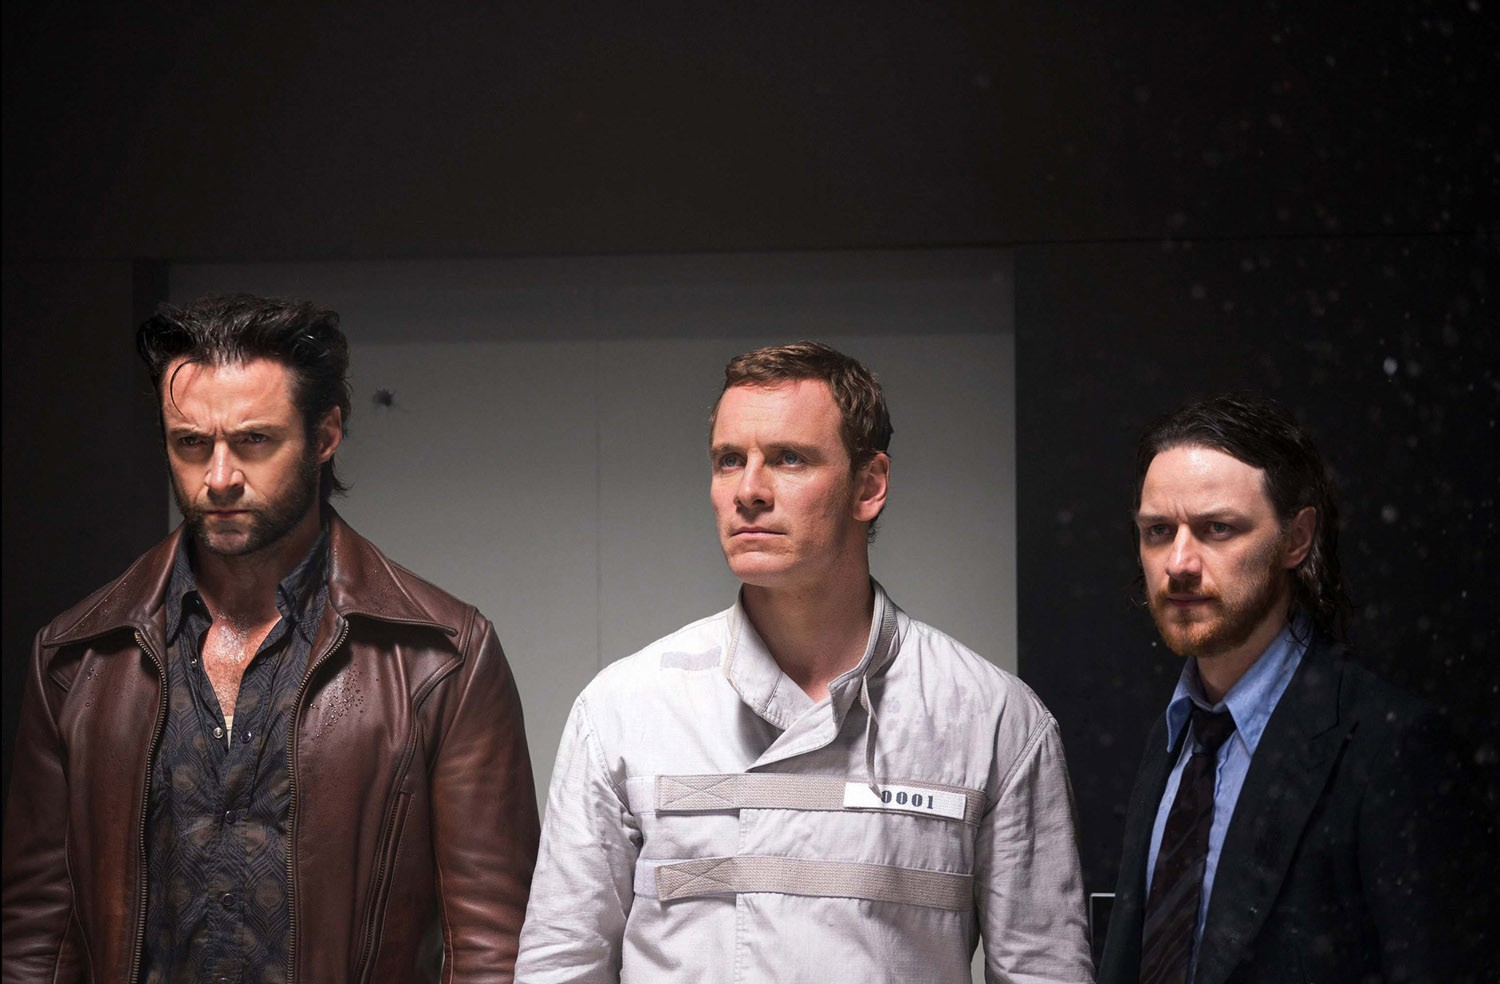 Hugh Jackman,James McAvoy,Michael Fassbender